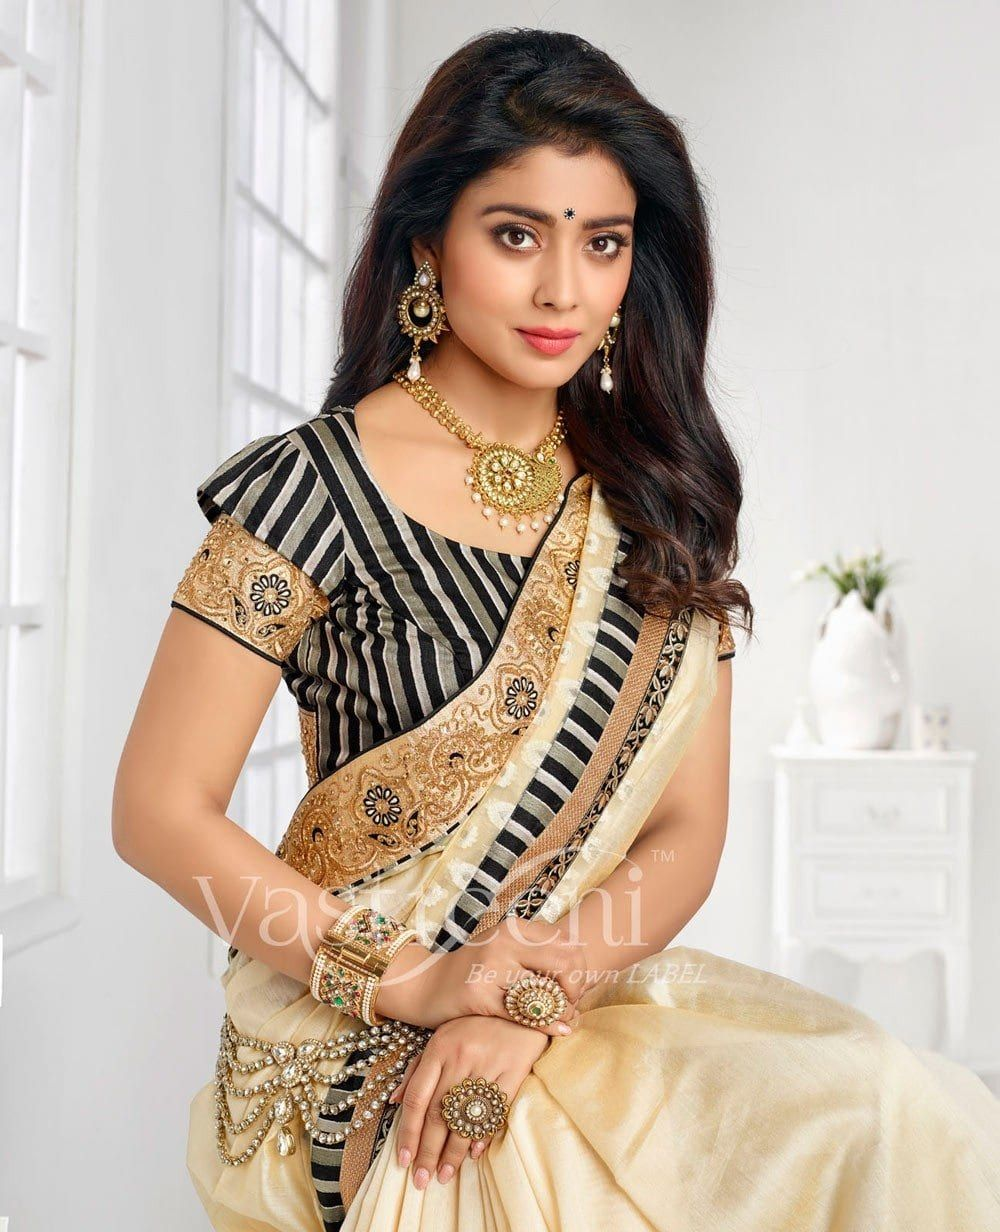 4c8a49a5cd cream-traditional-south-indian-wedding-saree-in-silk-c16484-f2c-2-831x1024 23  Latest South Indian Wedding Sarees To Try This Year